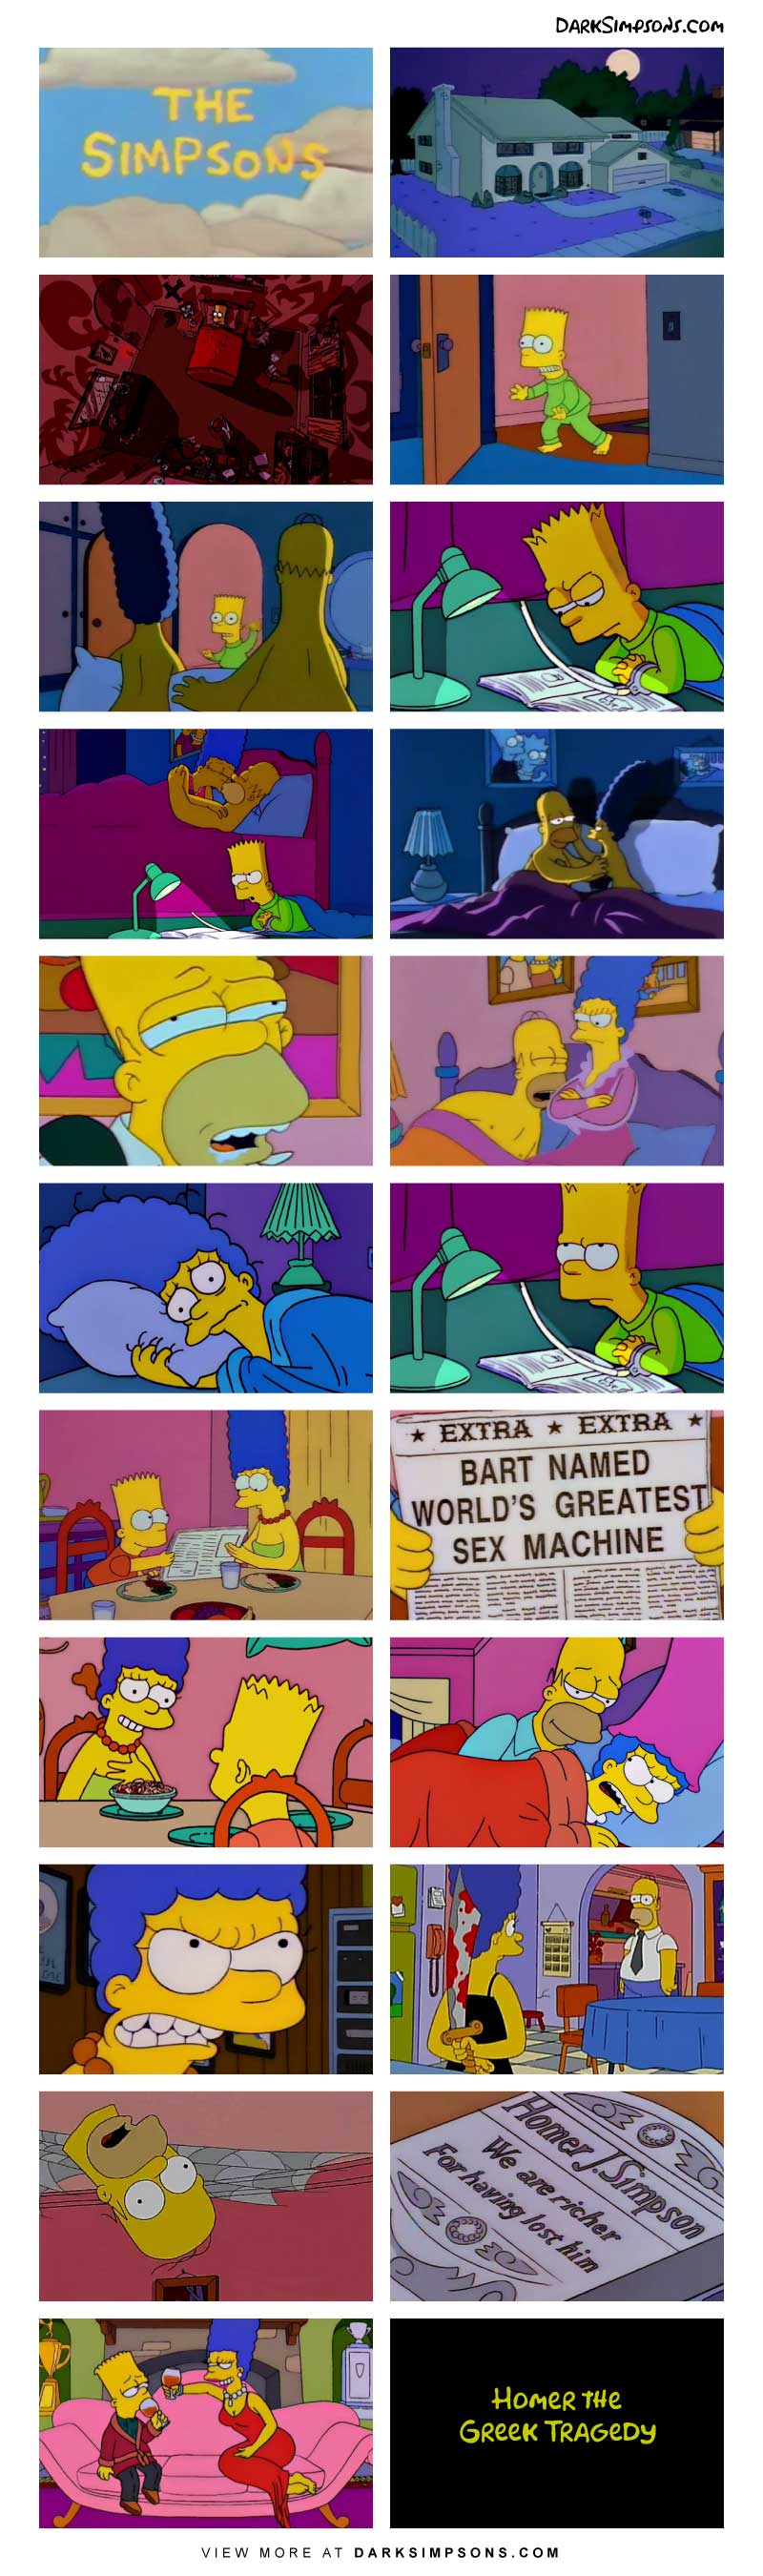 Marge and Homer are snuggling one night and Homer finishes early. Marge is unsatisfied with Homer's performance in the bedroom, so she turns to an unexpected replacement. Read this week's dark comic based on a greek tradgedy.